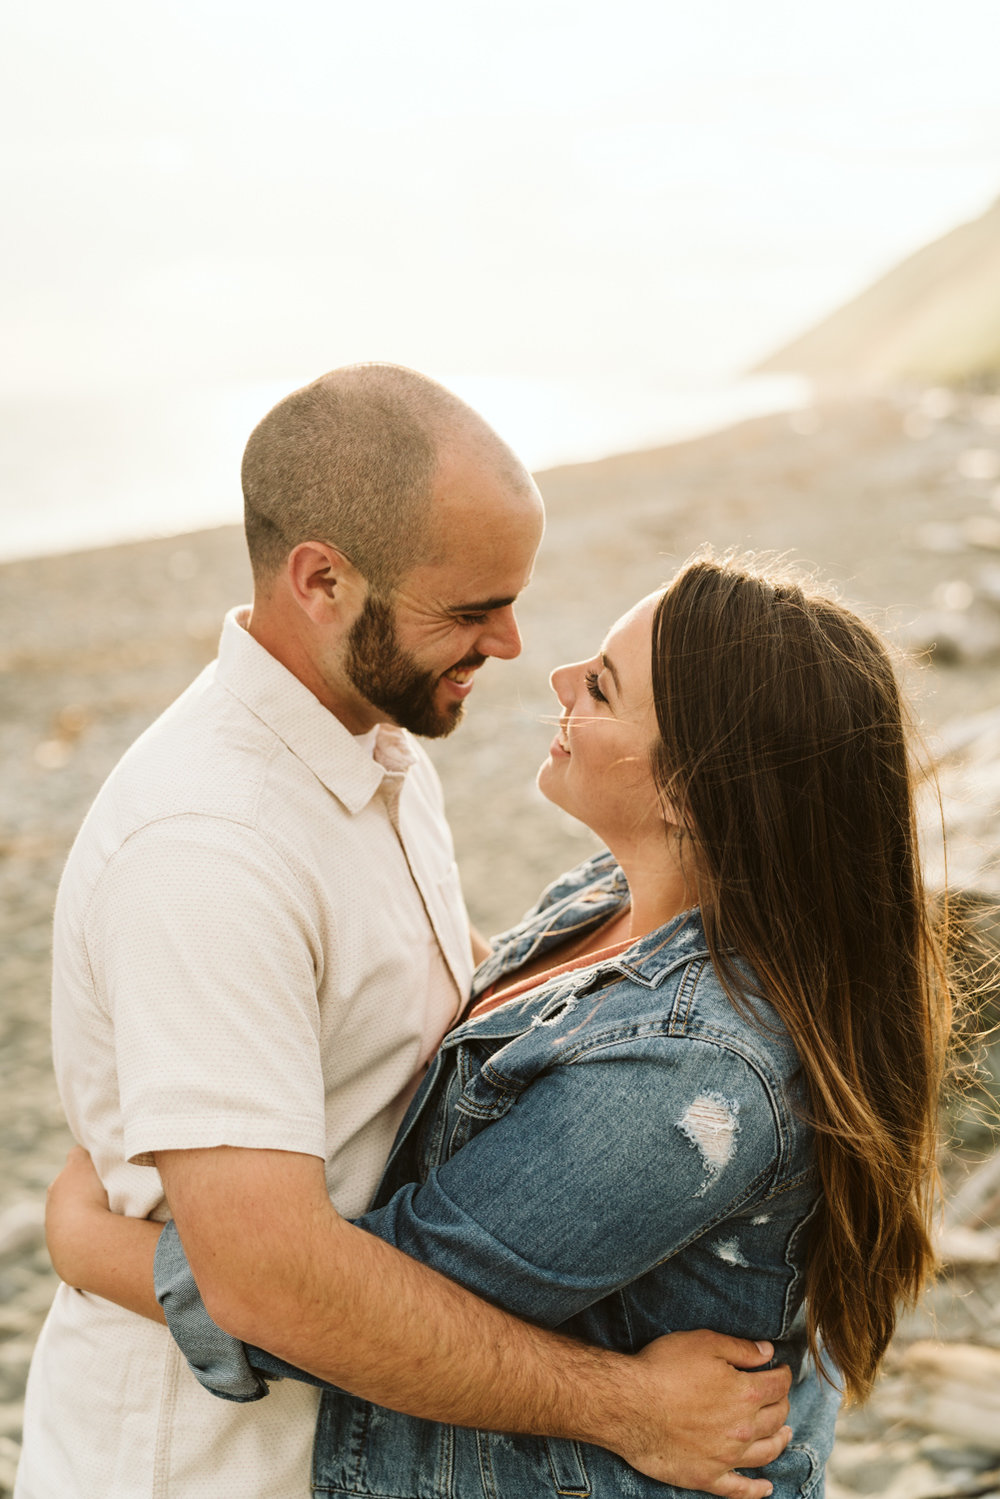 April Yentas Photography - Jess & Eric Engaged-4.jpg